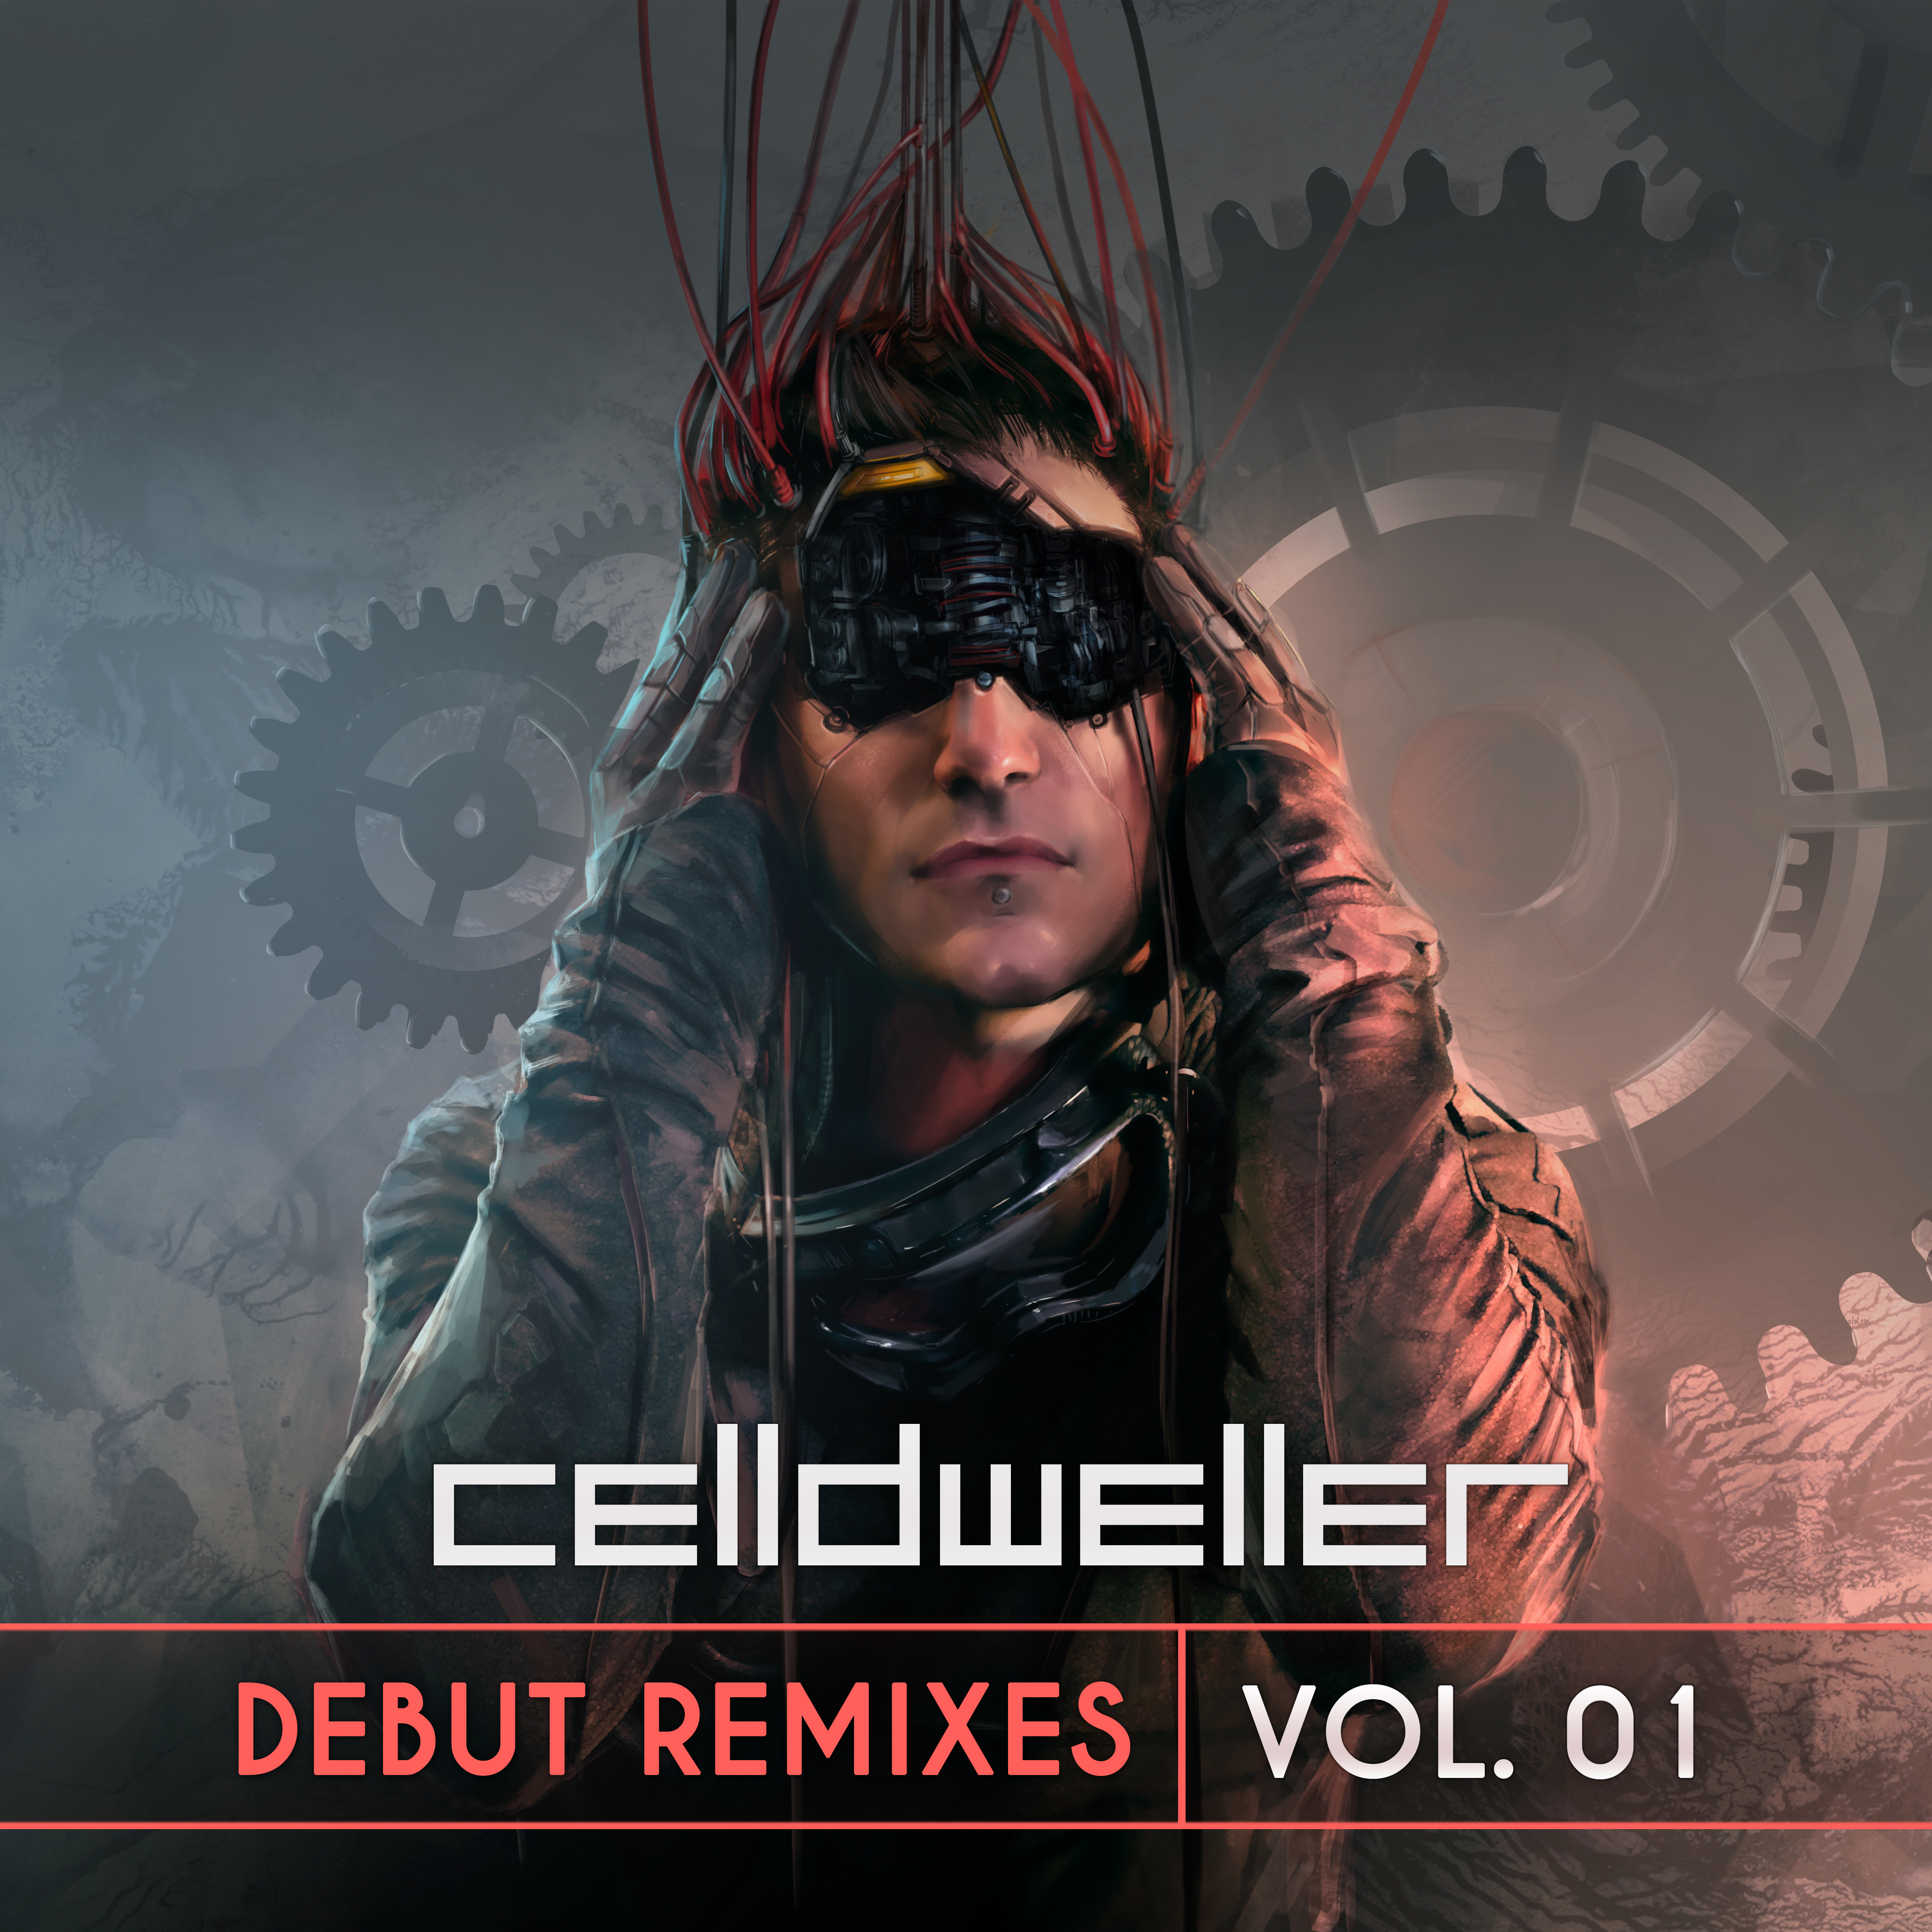 Celldweller - Debut Remixes Vol. 01 Image